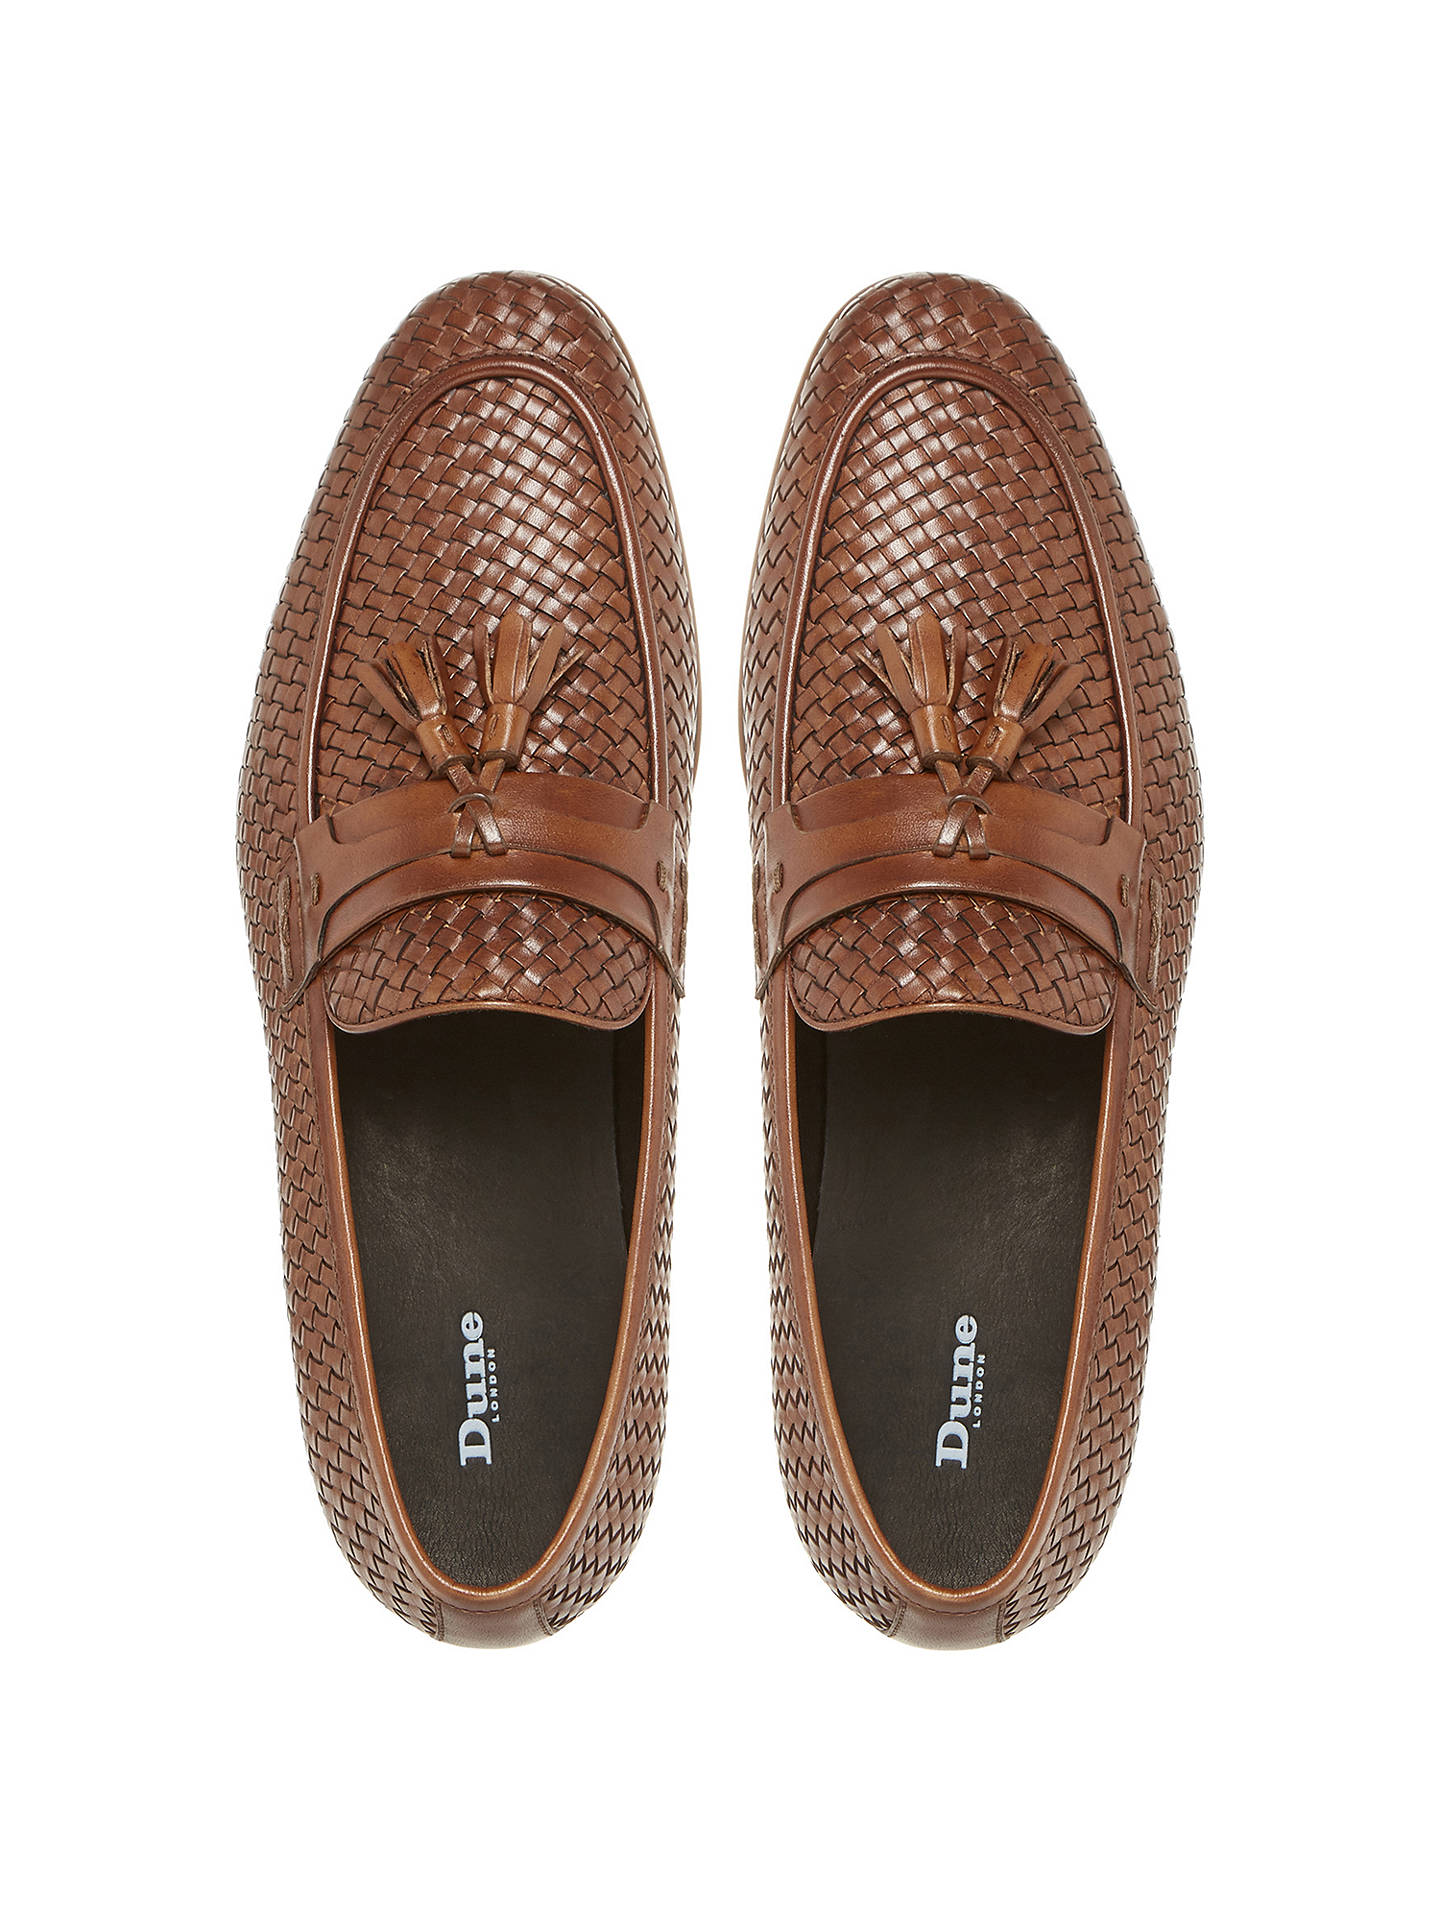 6c188fe67cc Dune Paolo Apron Stitch Tassel Loafers at John Lewis   Partners